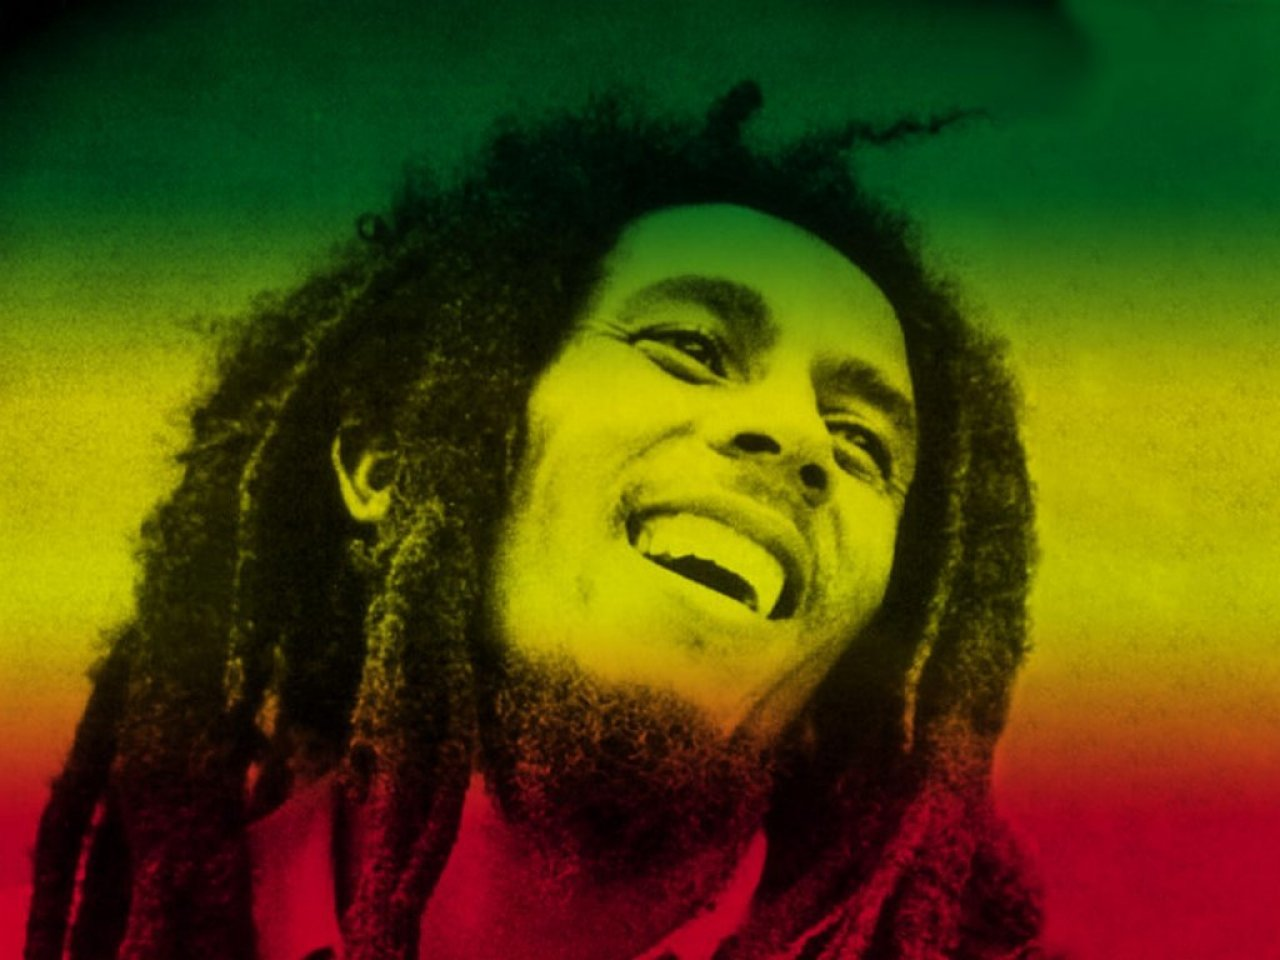 44898 download wallpaper People, Men, Bob Marley screensavers and pictures for free